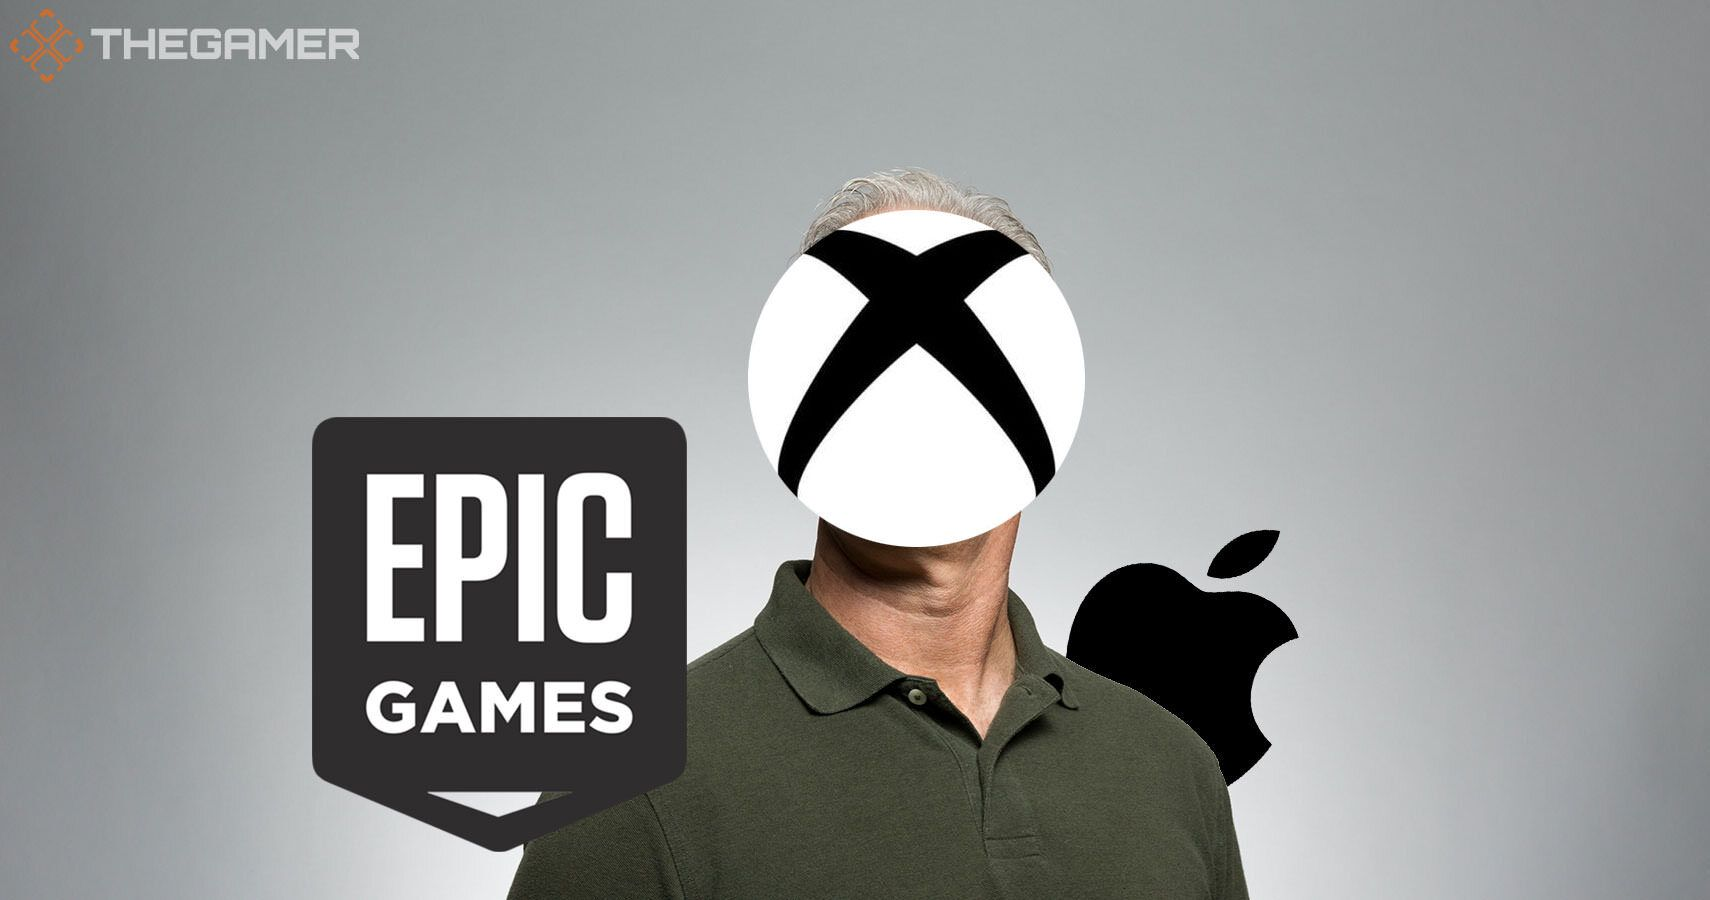 Epic Games Is Trying To Get An Xbox Exec To Testify Against Apple In Upcoming Lawsuit